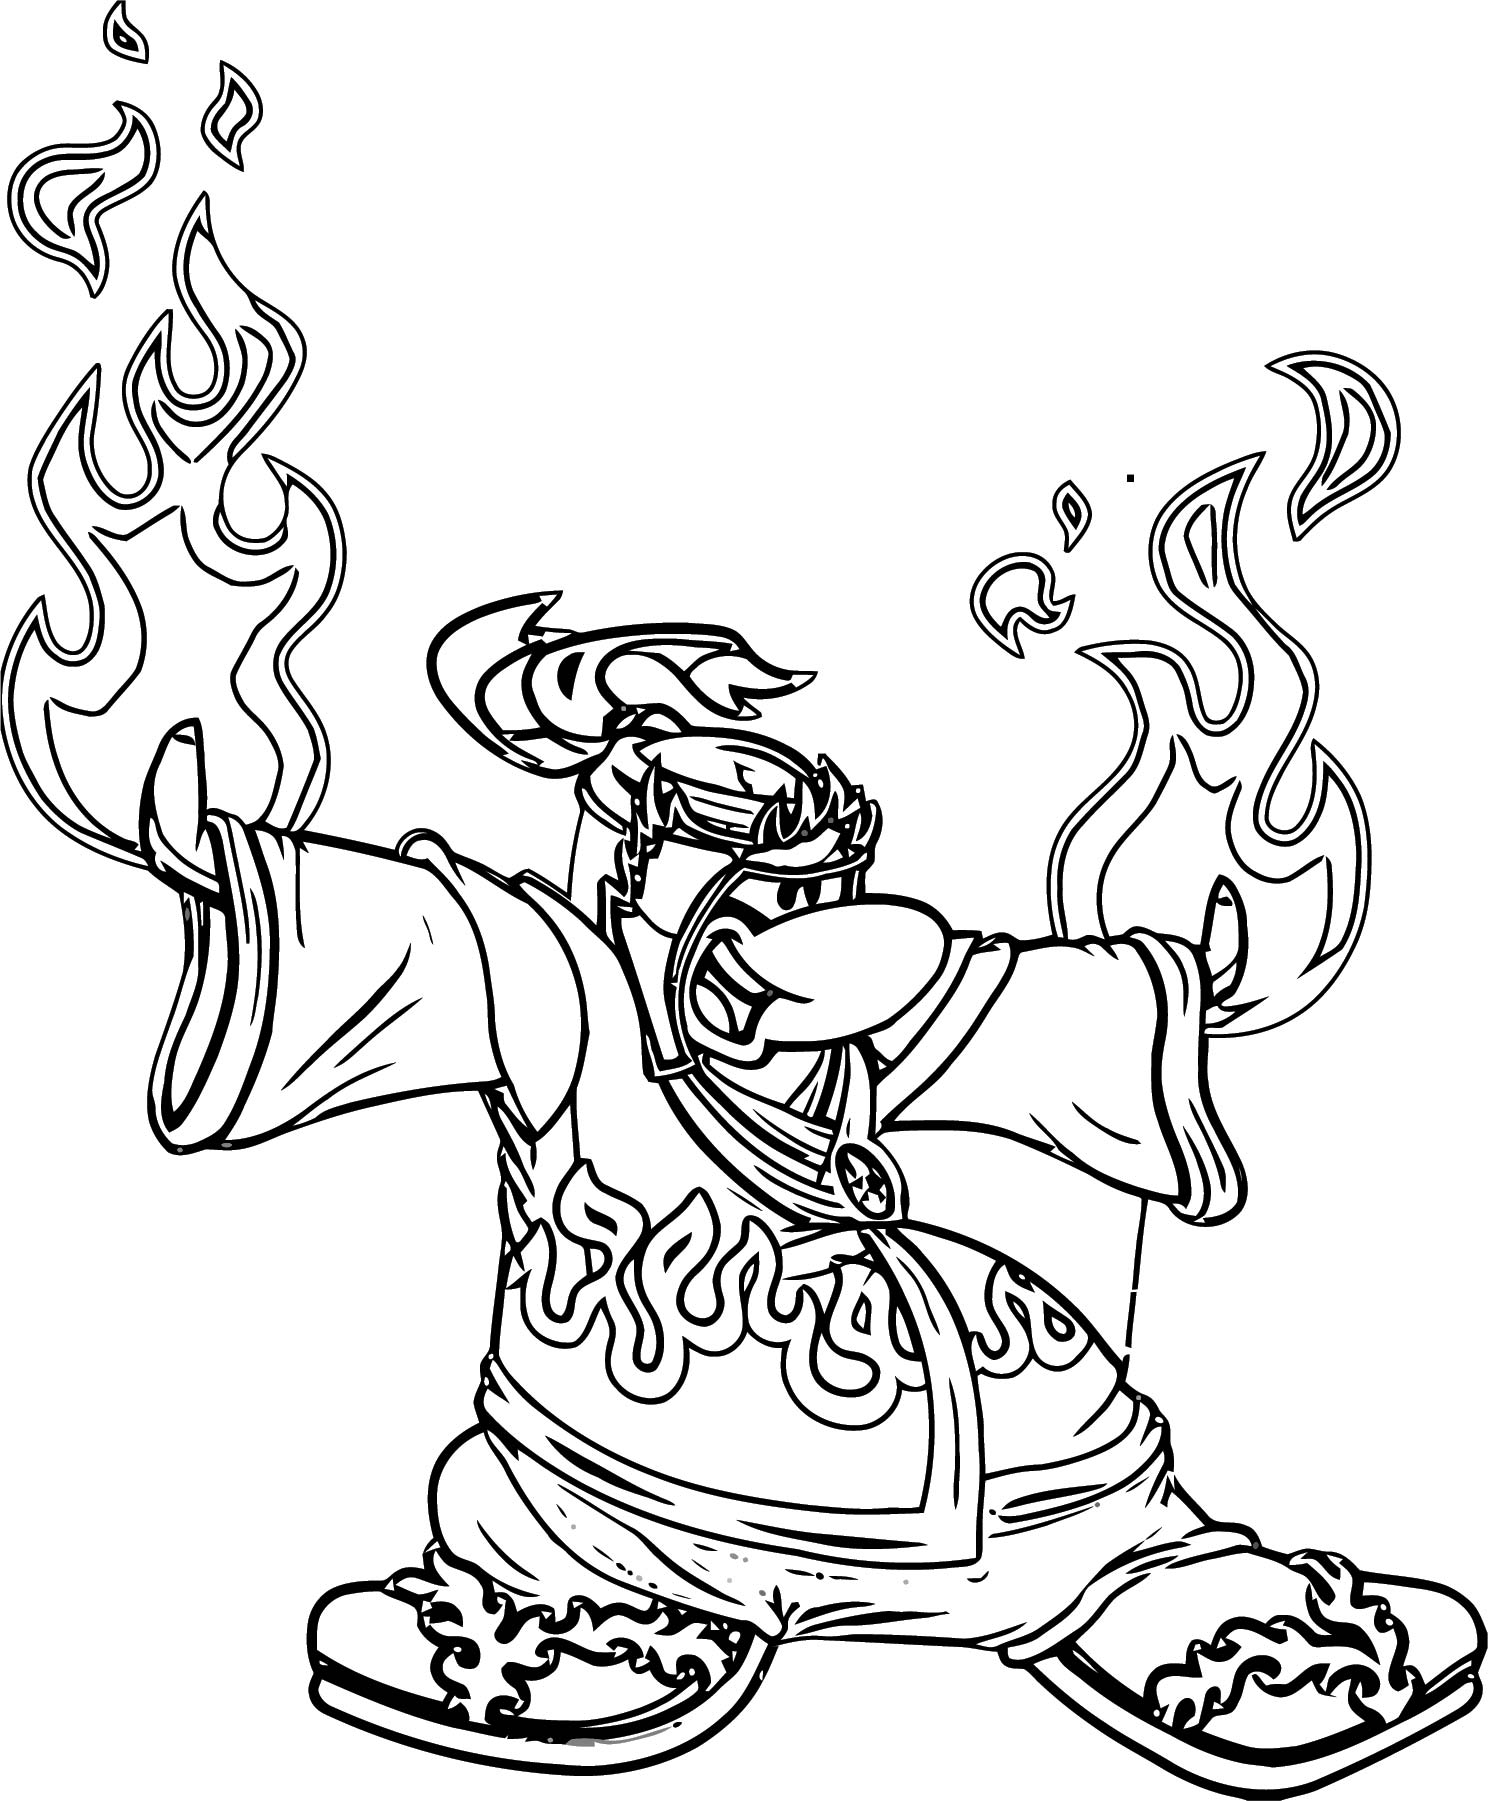 Fire Ninja 4 Coloring Page